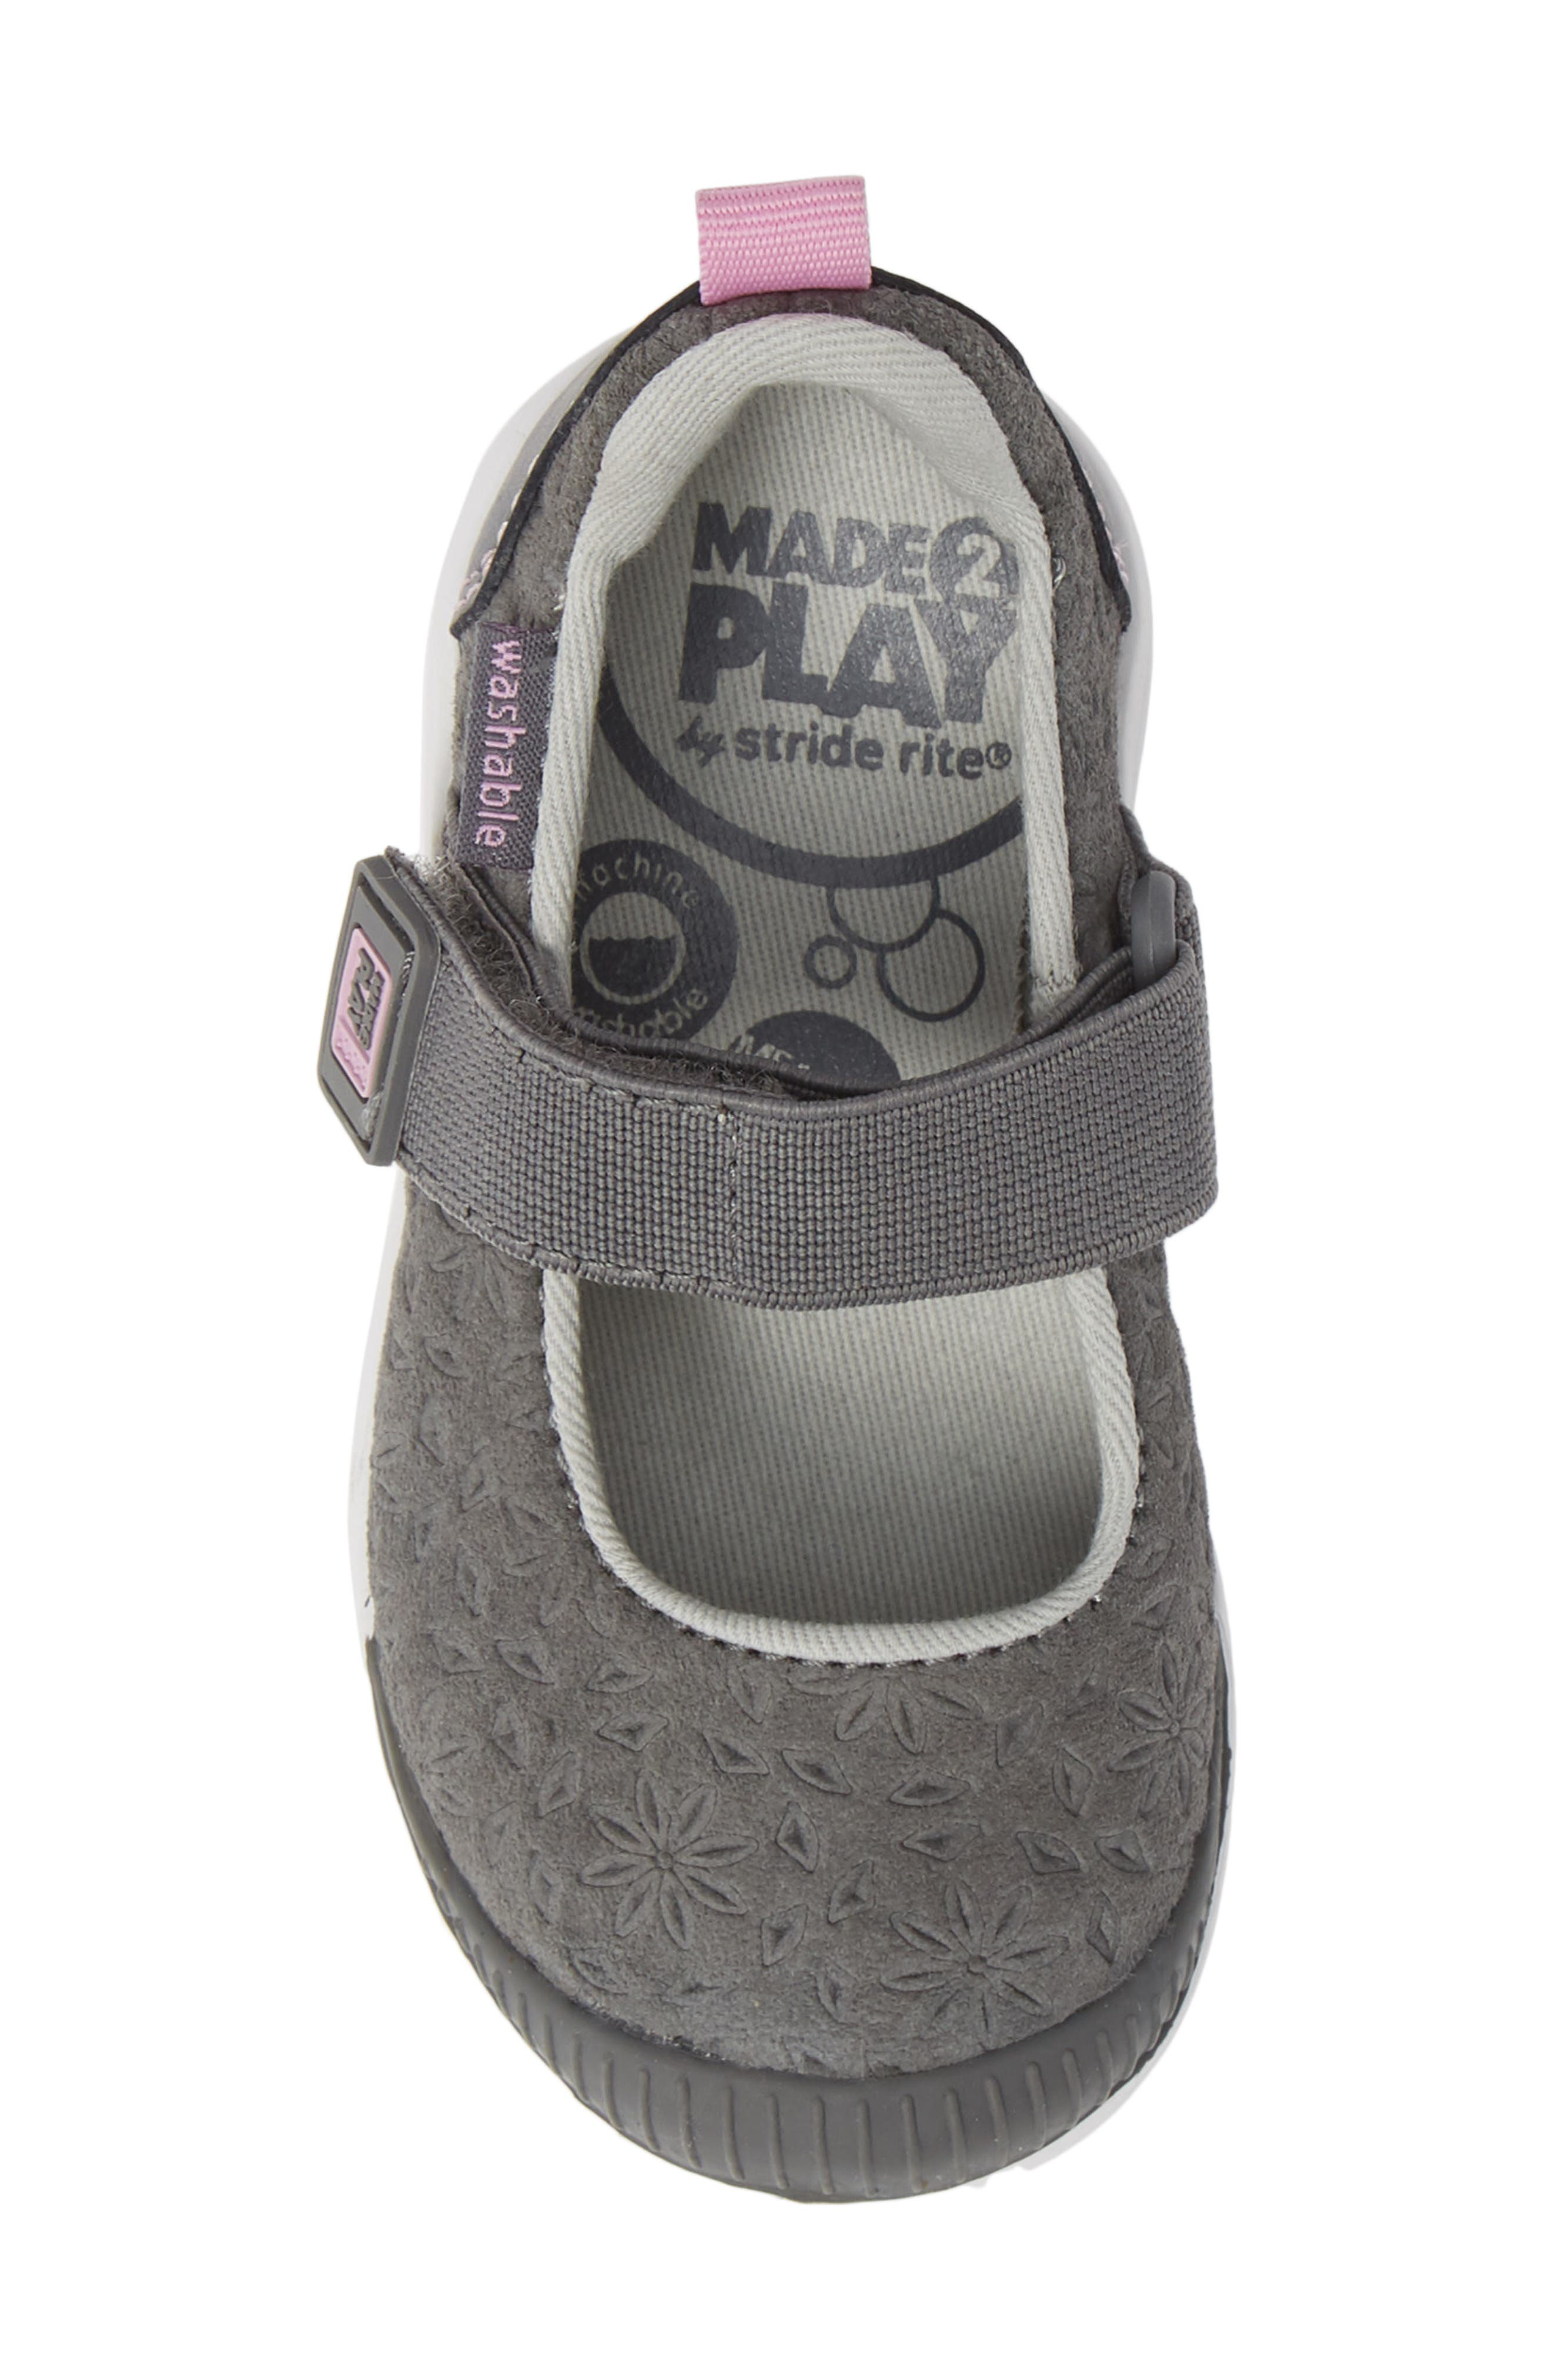 Made2Play<sup>®</sup> Lia Washable Mary Jane Sneaker,                             Alternate thumbnail 5, color,                             GREY